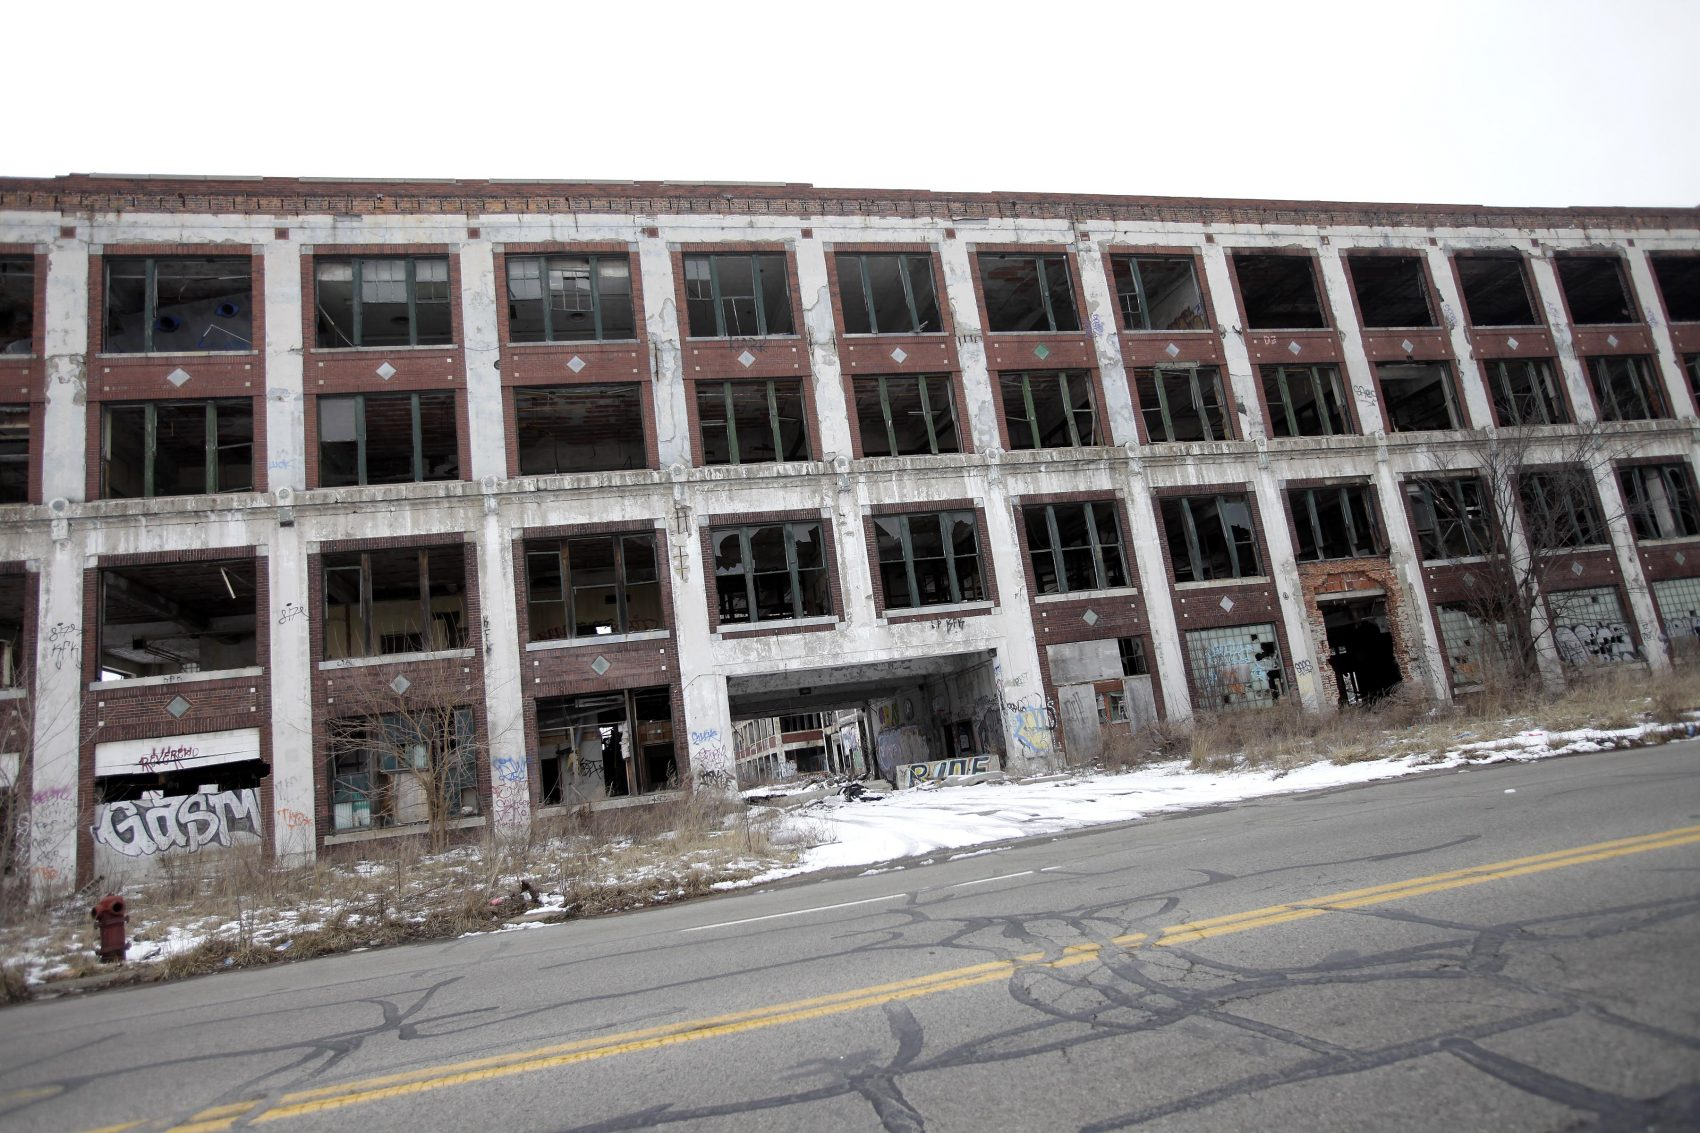 The former Packard Plant in Detroit in February 2013. (J.D. Pooley/Getty Images)